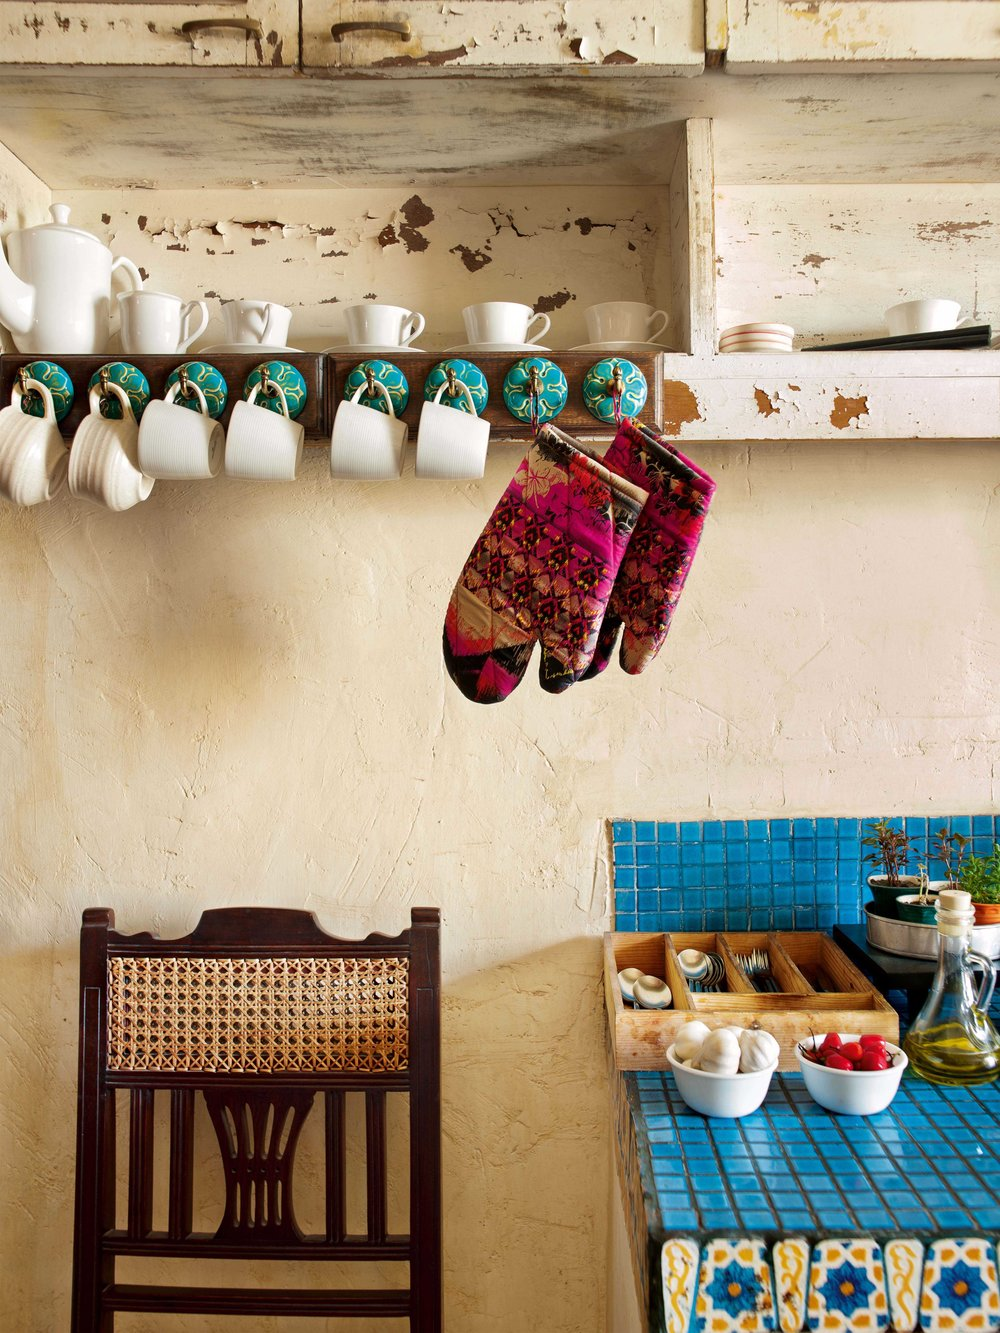 White porcelain, distressed wood cabinets and ethnic tiles are a feature of the open kitchen.